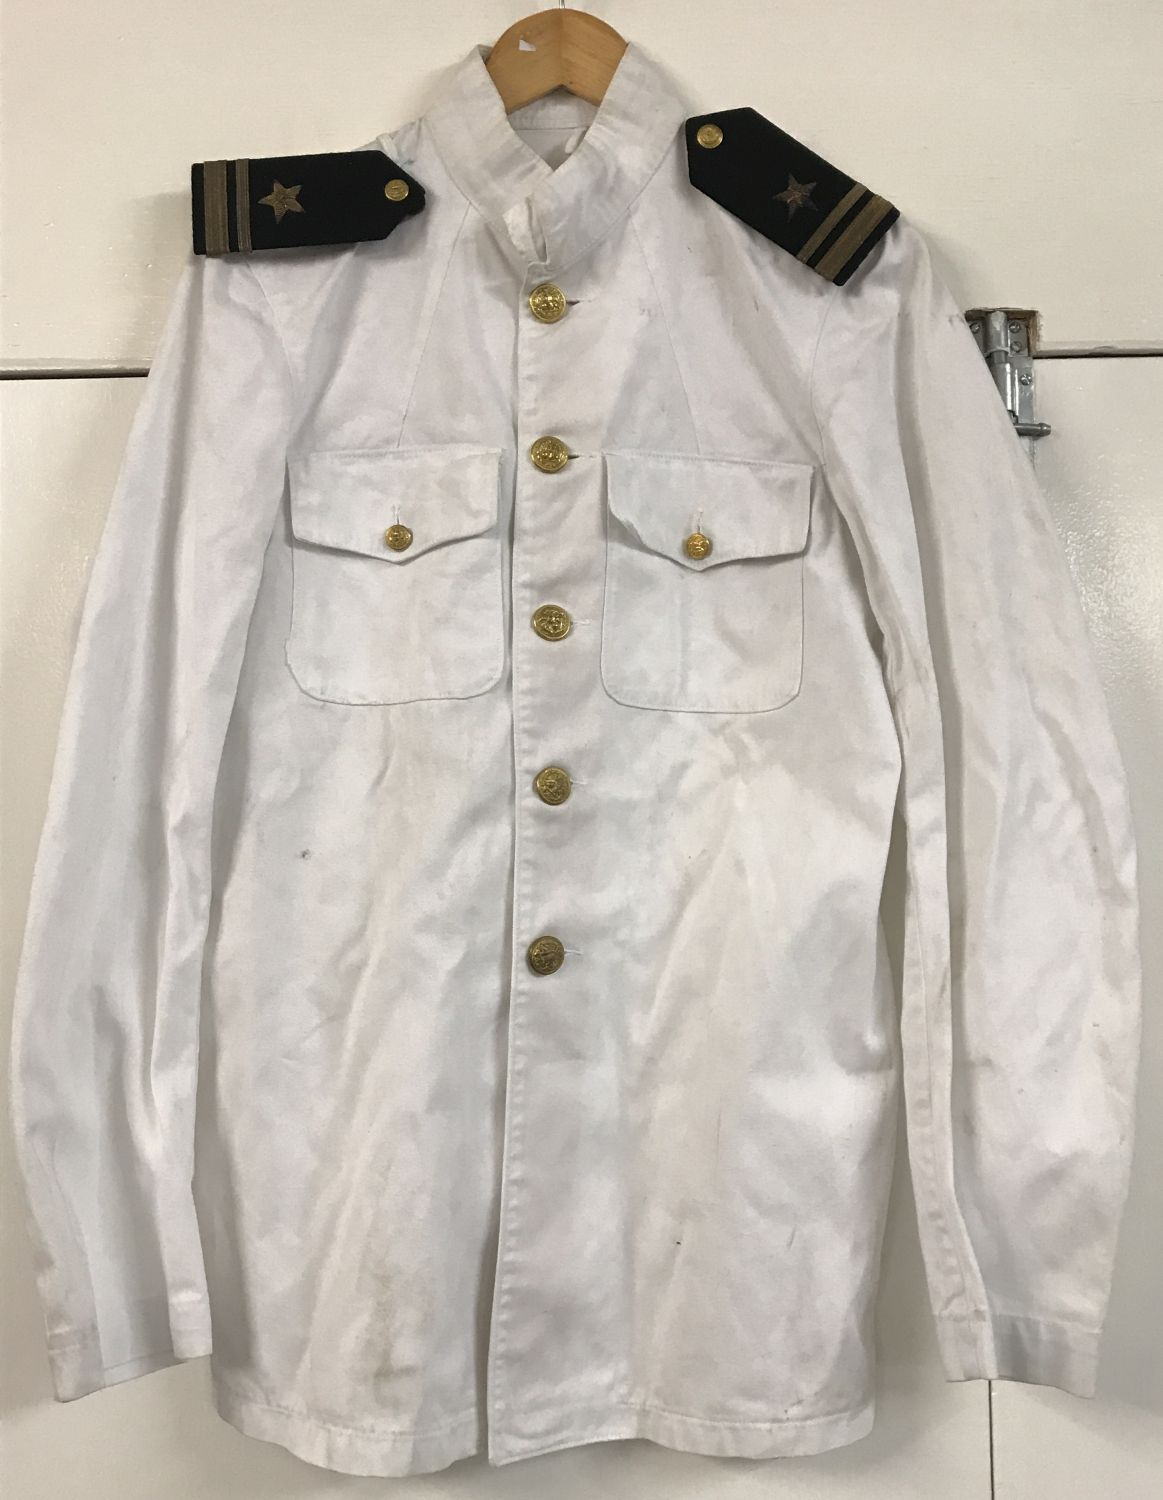 Lot 141 - A vintage US Navy style white tunic with buttons and shoulder boards.